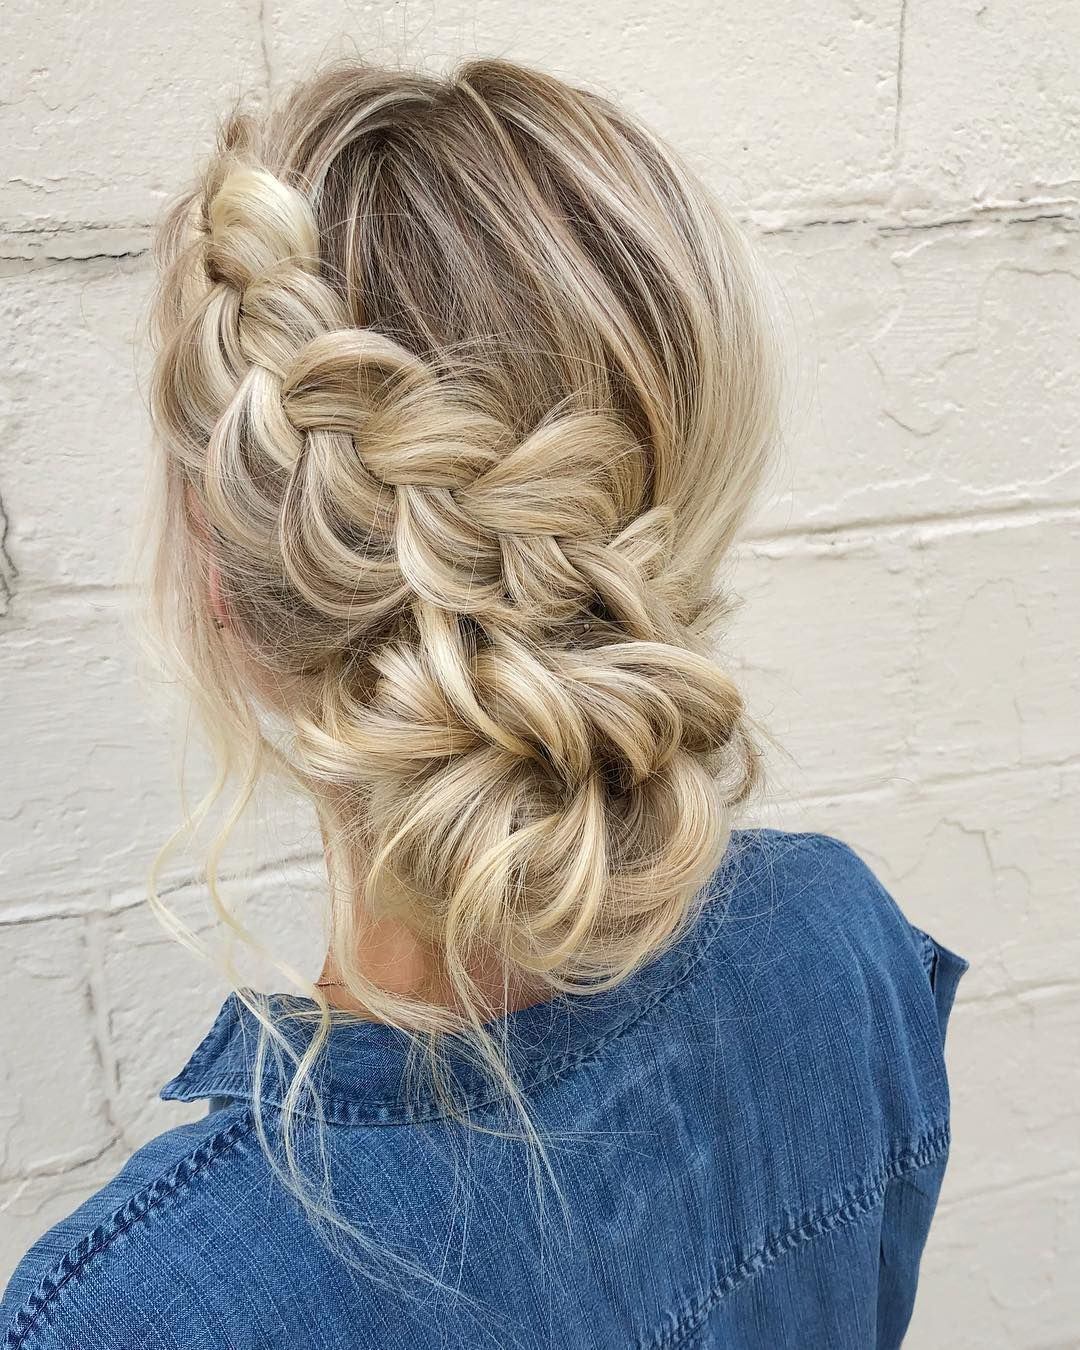 The Best Winter Hair Styles To Try This Season